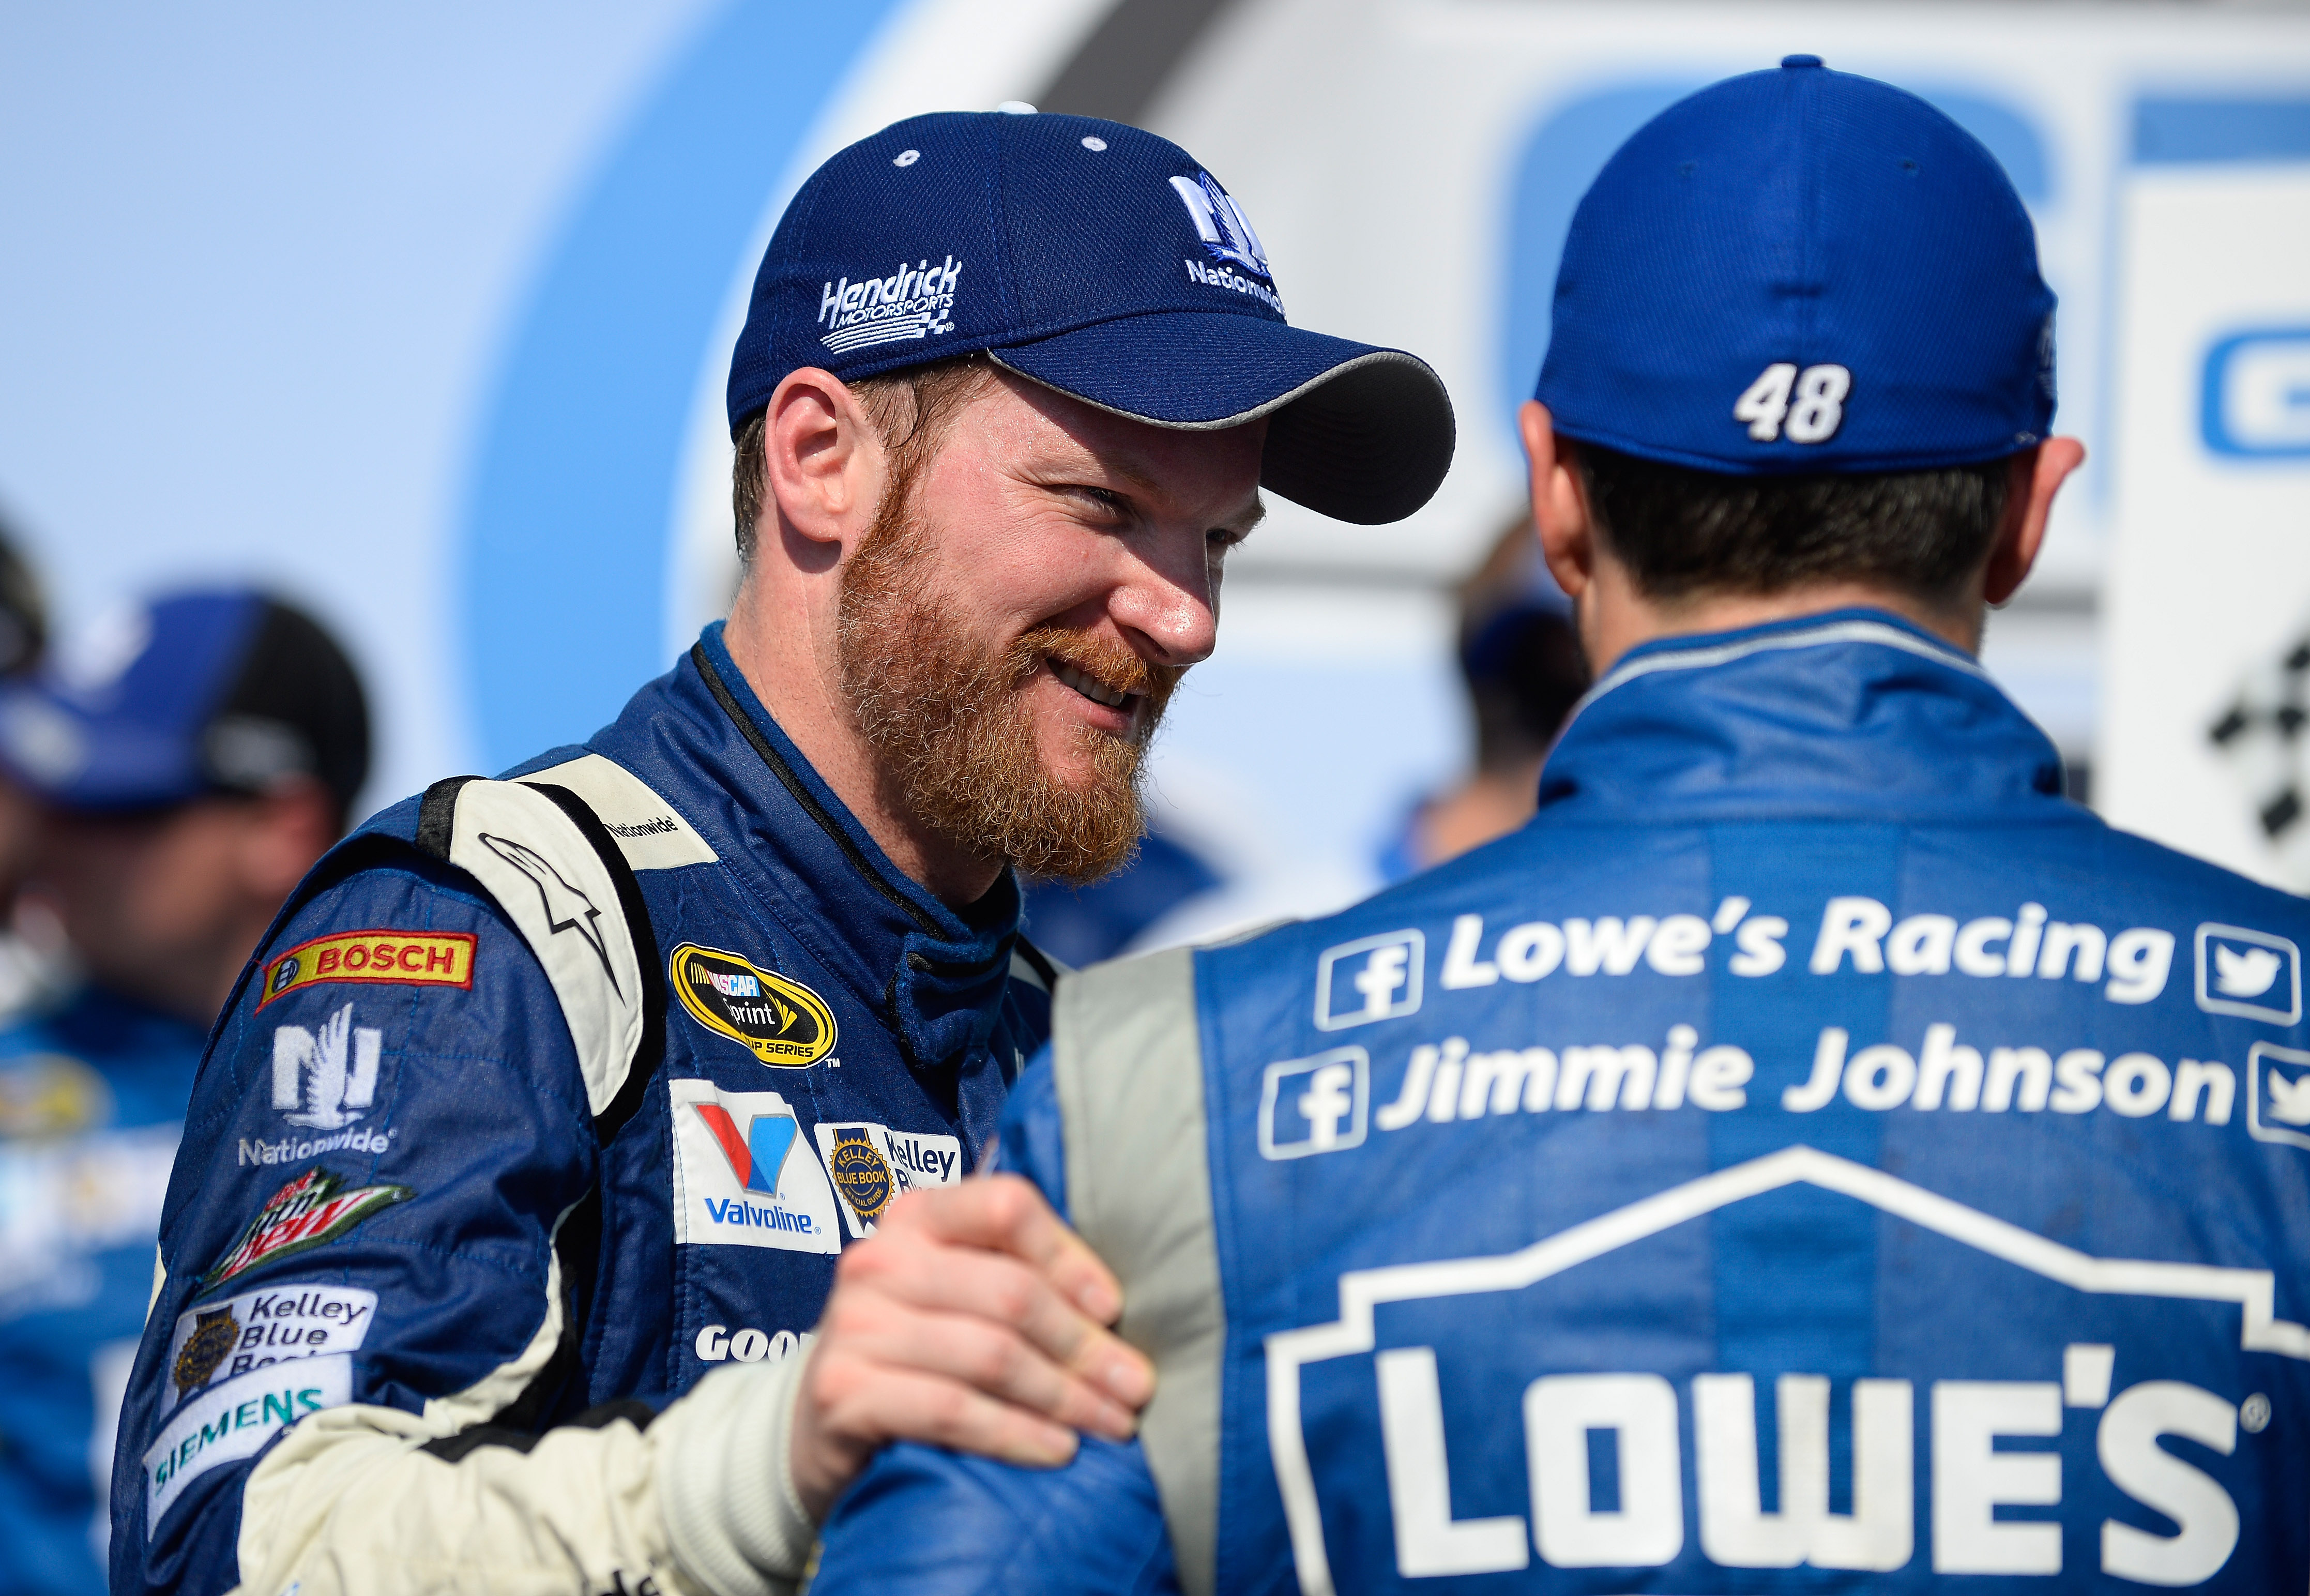 Dale Earnhardt Jr., left, talks to Jimmie Johnson, right, in Victory Lane after winning the Talladega 500 NASCAR Sprint Cup Series auto race at Talladega Superspeedway, Sunday, May 3, 2015, in Talladega, Ala. (AP Photo/David Tulis)